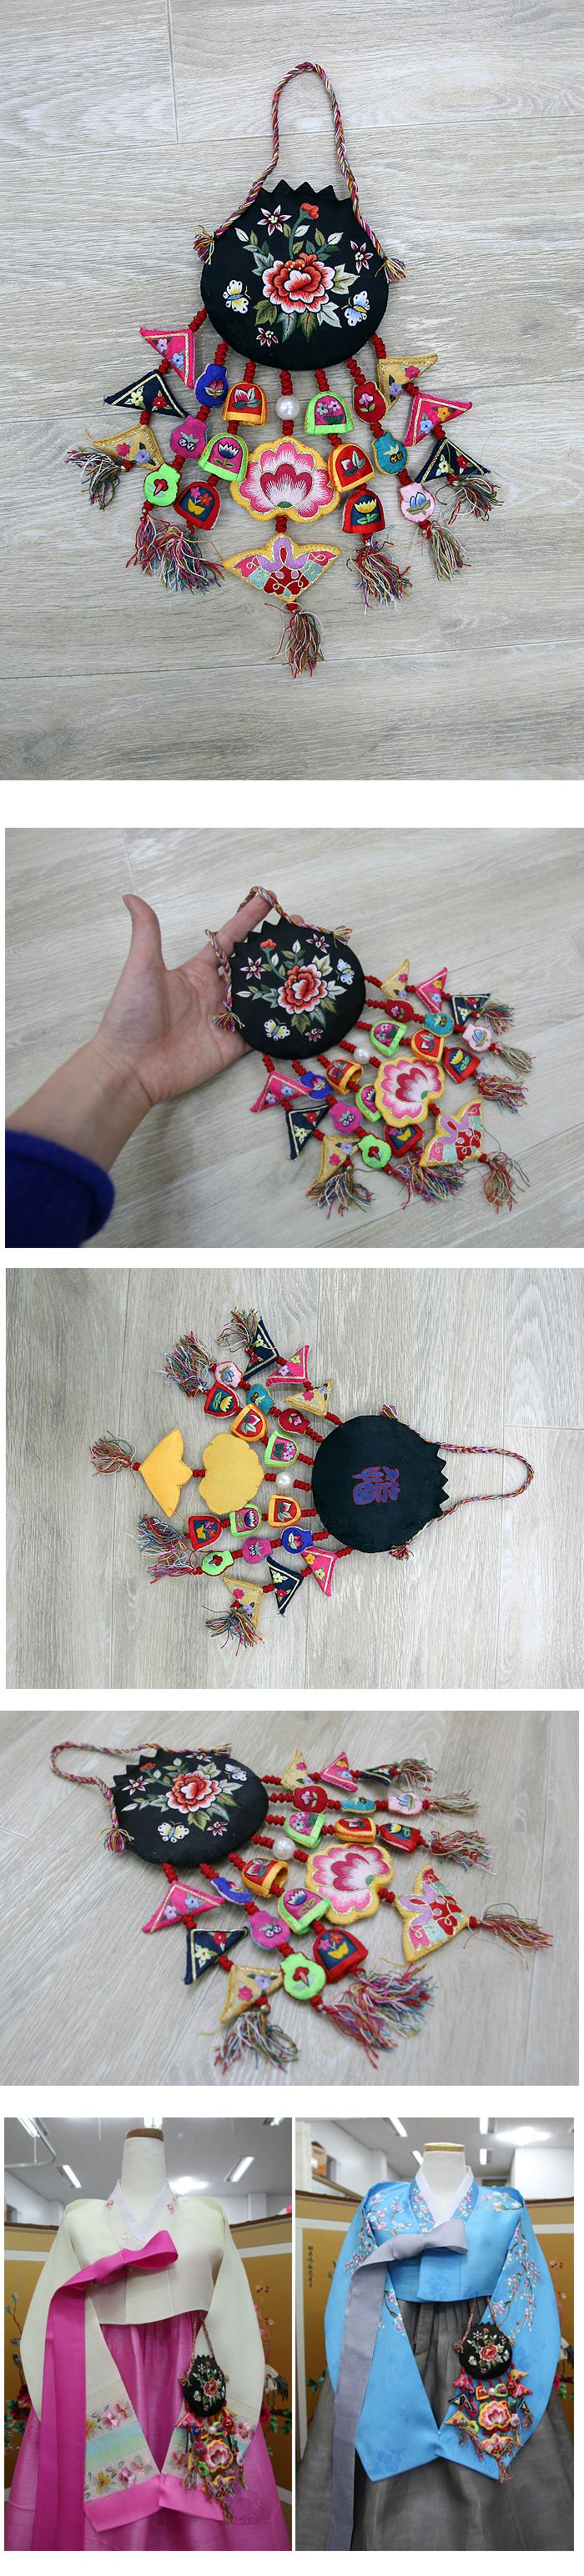 korean traditional ornaments for interioa, hanbok, 1st birthday party table high quality embroidery norigae <3